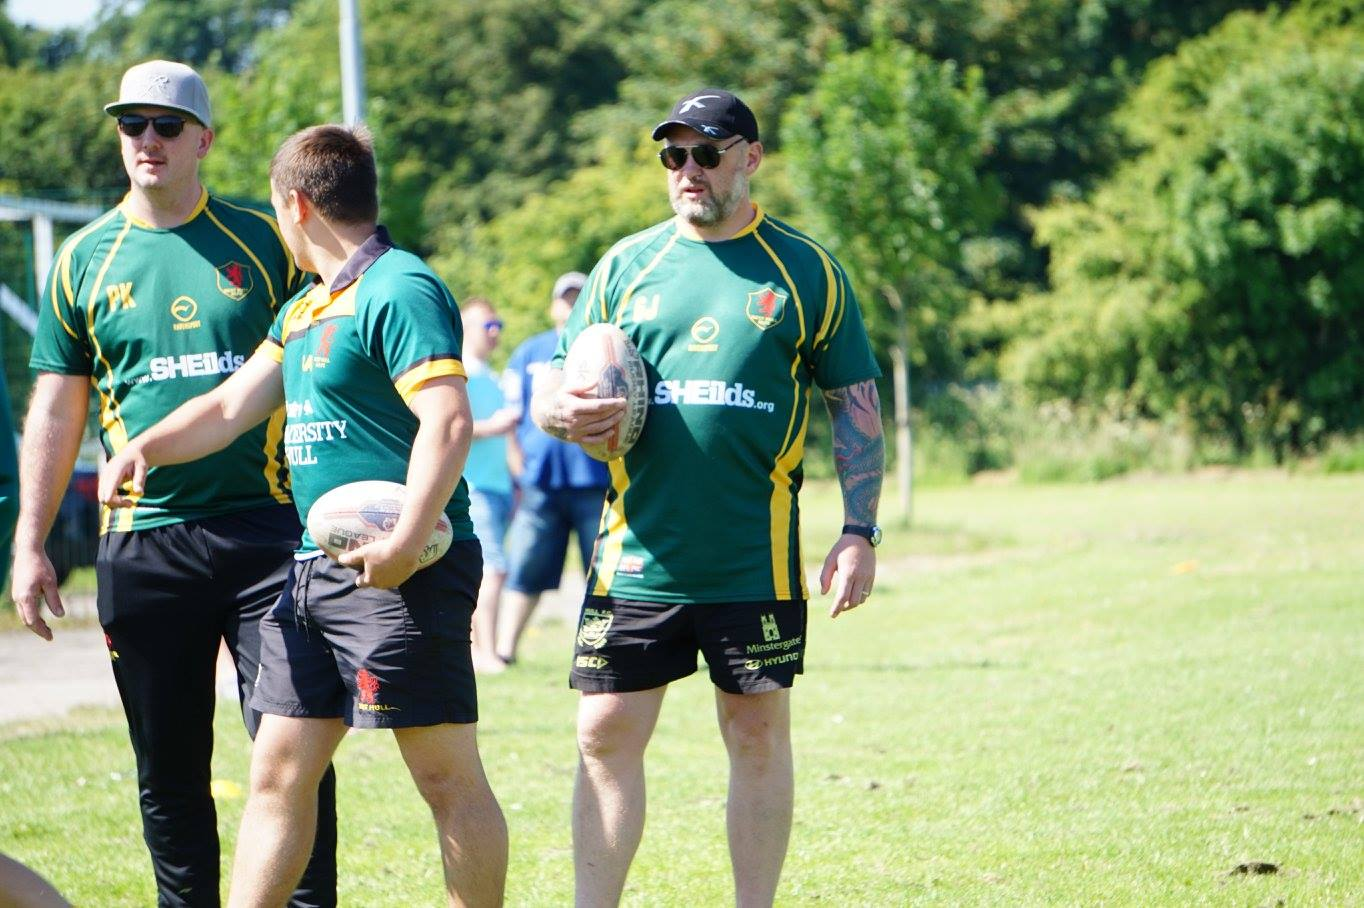 Glyn Jones (right) who also coaches his own son's junior team.